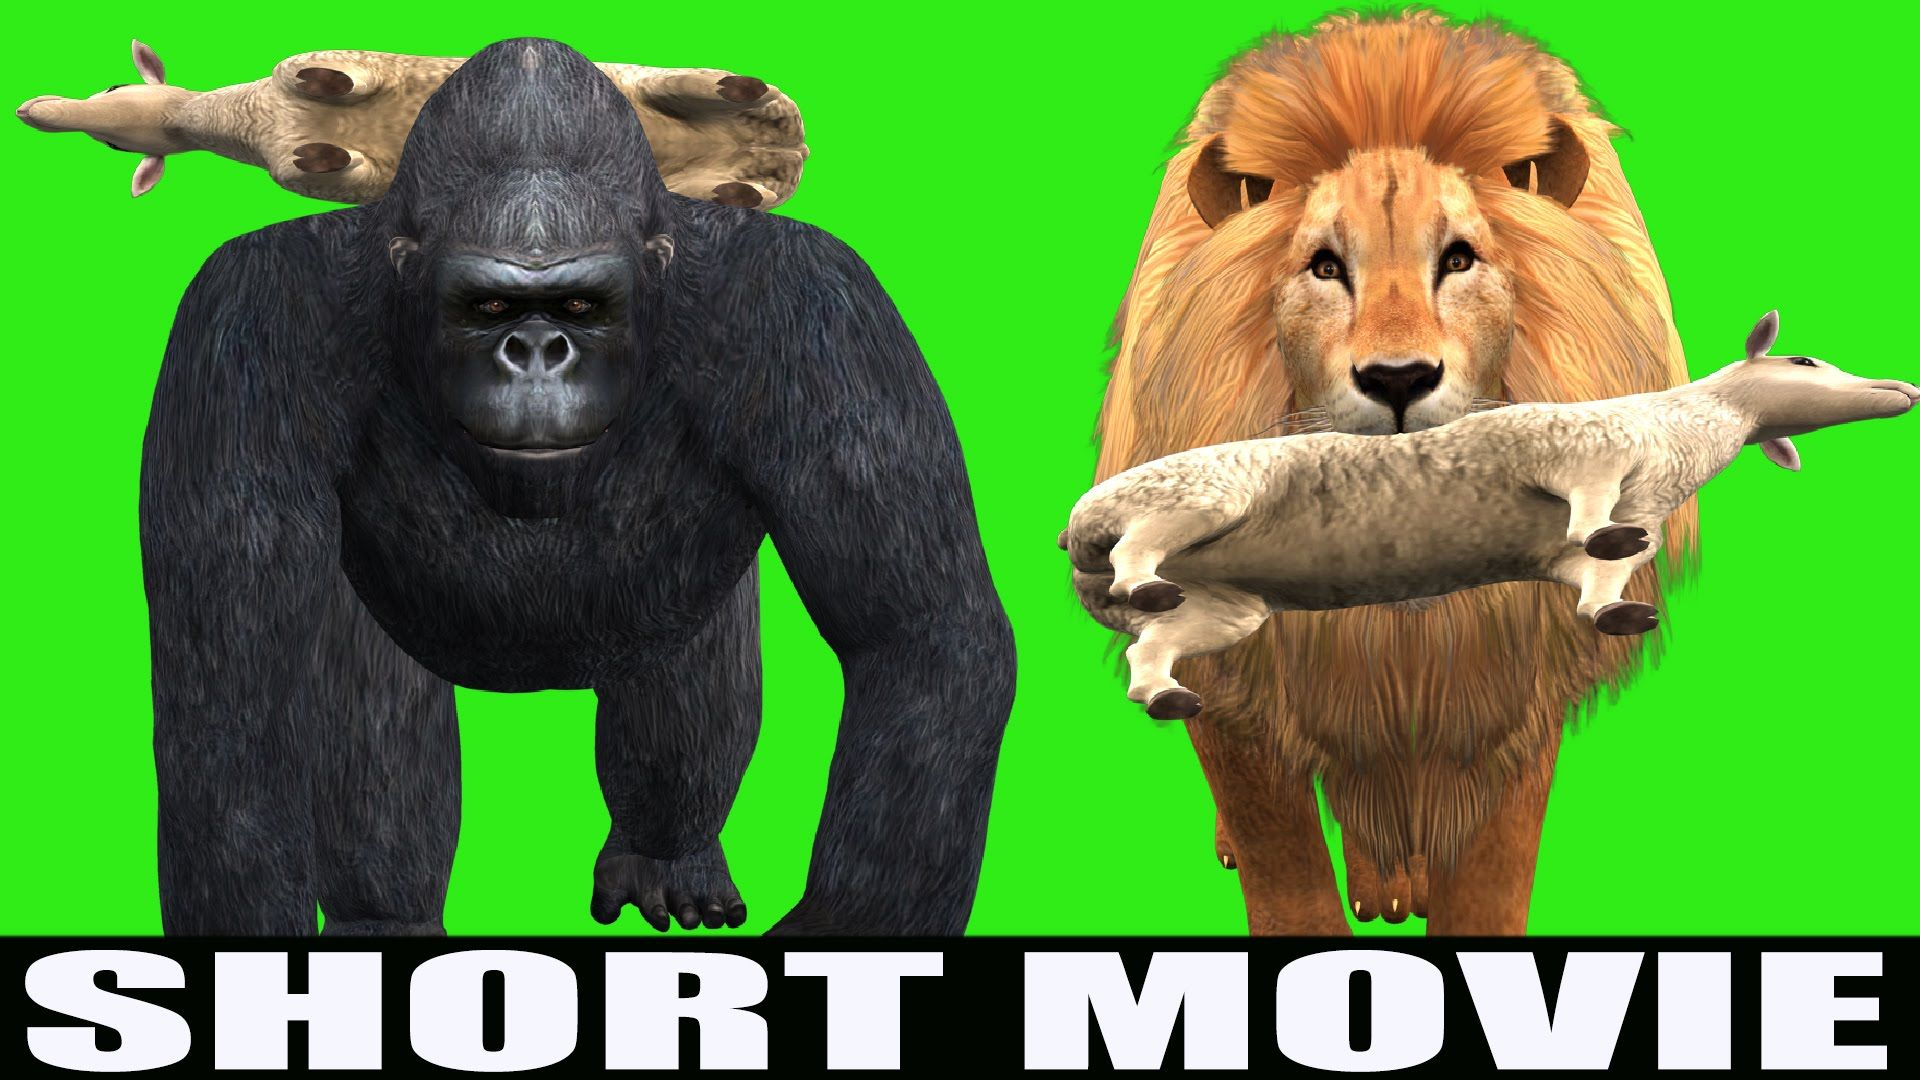 Funny Animated Short Movie Funny Story Gorilla Steals